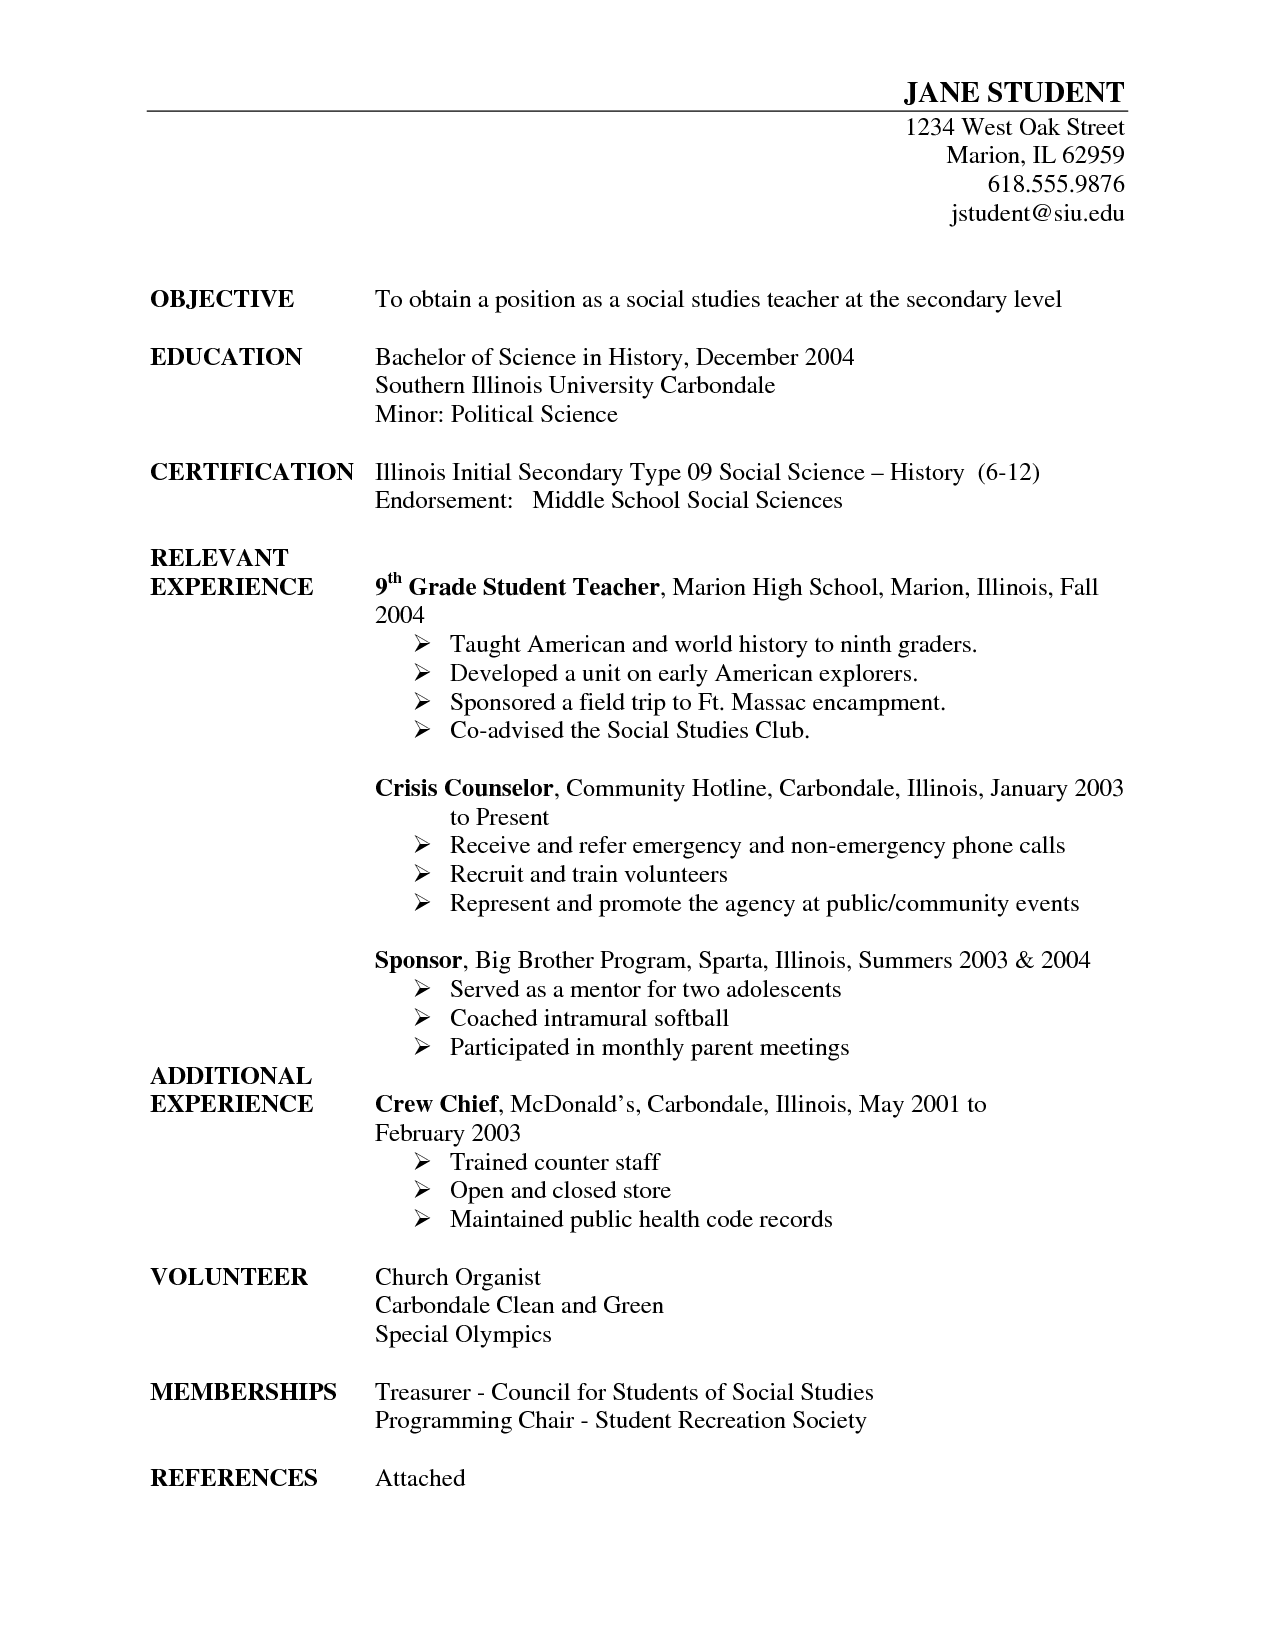 secondary teacher resume examples science teacher resume samples for teaching job science teacher resume samples resumes with quotes quotesgram sample - Halliburton Field Engineer Sample Resume